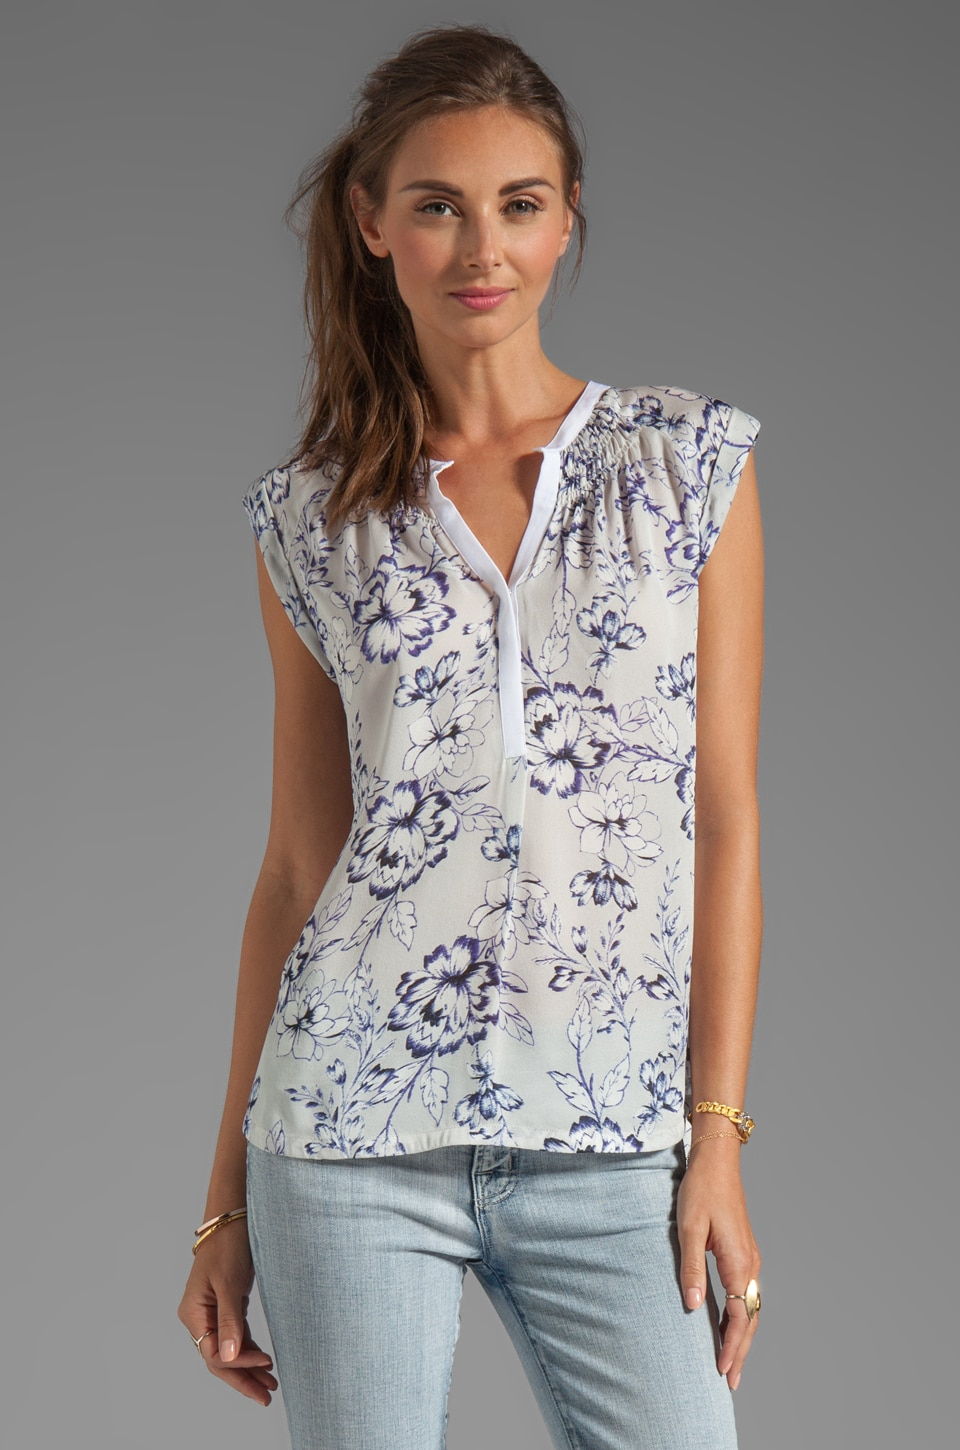 Rebecca Taylor Zen Flower Sleeveless Blouse in Grey